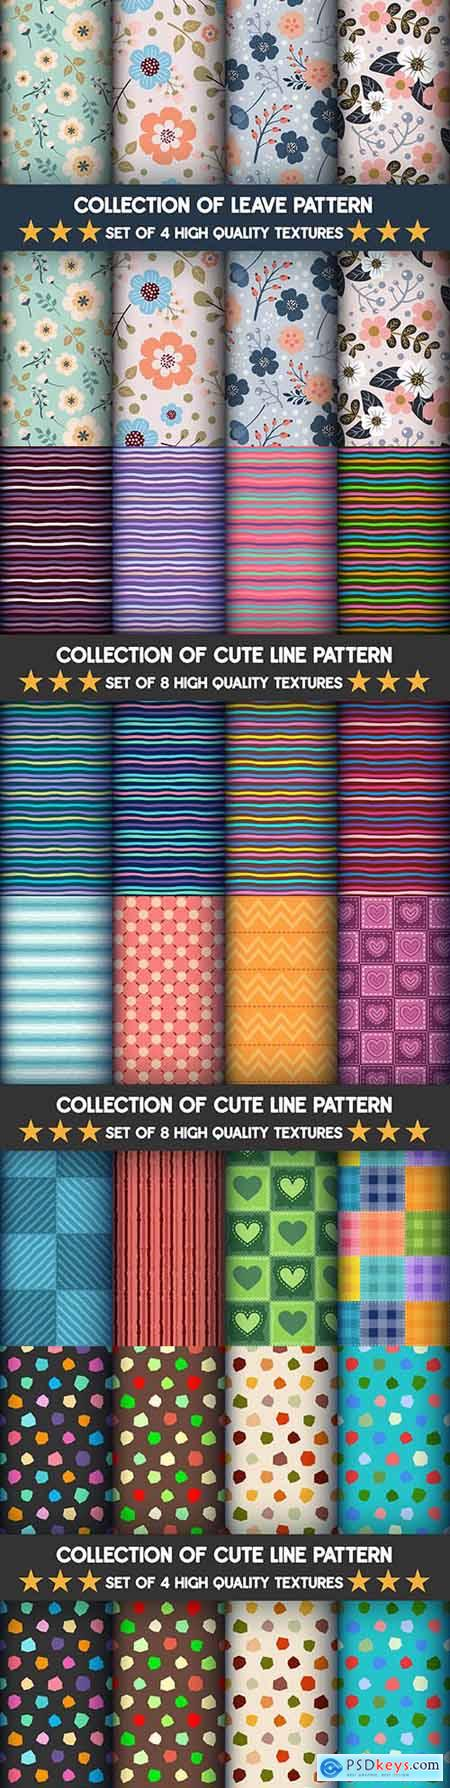 Collection decorative patterns in an abstract design set